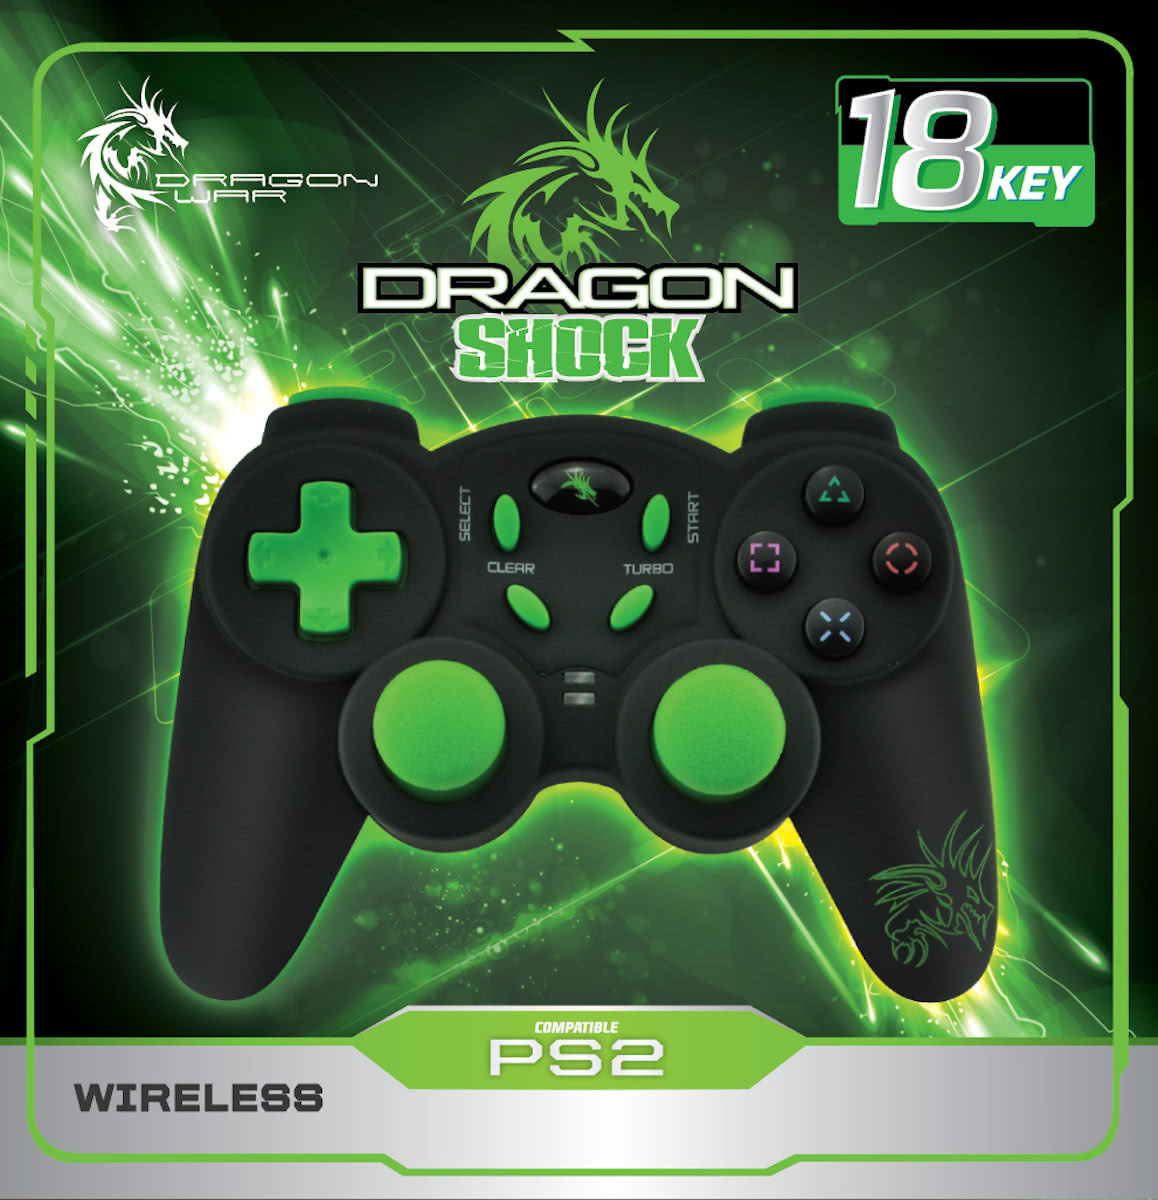 Dragonwar - Dragon Shock Wireless Controller - PS2